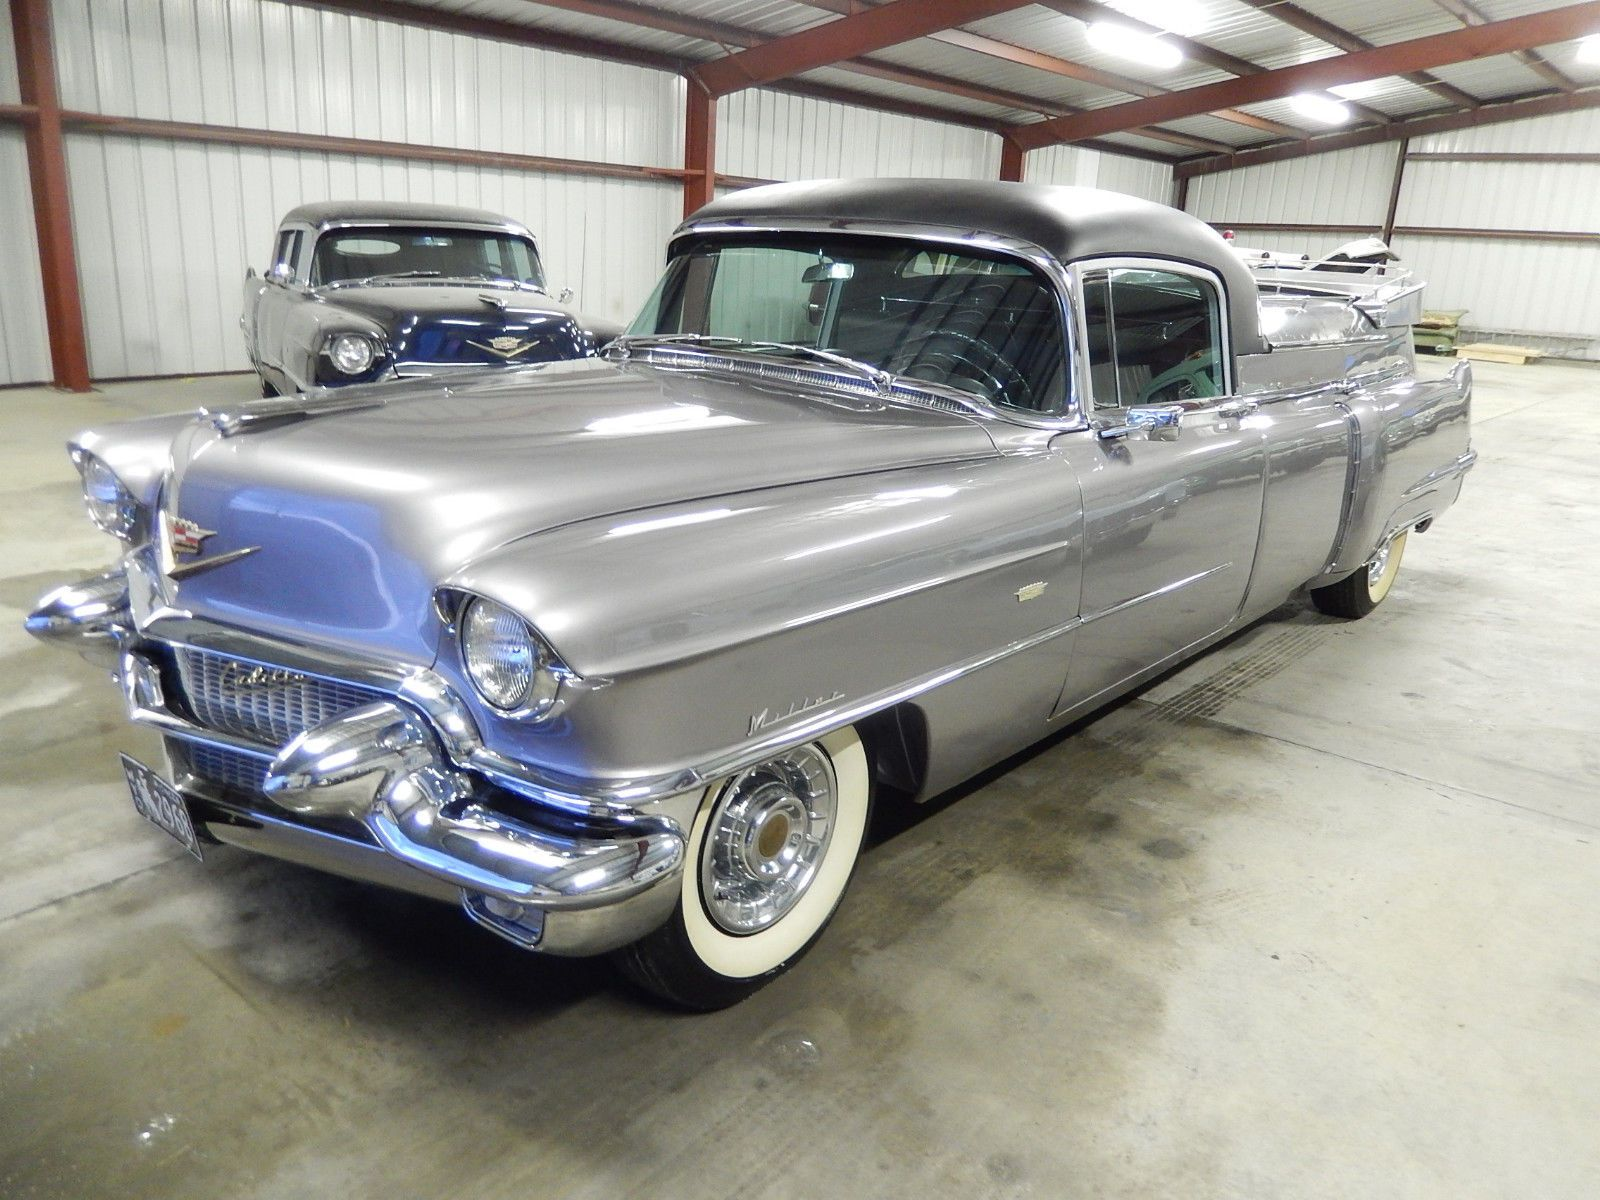 1956 cadillac deville for sale on classiccars com 9 - 1956 Cadillac Flower Car